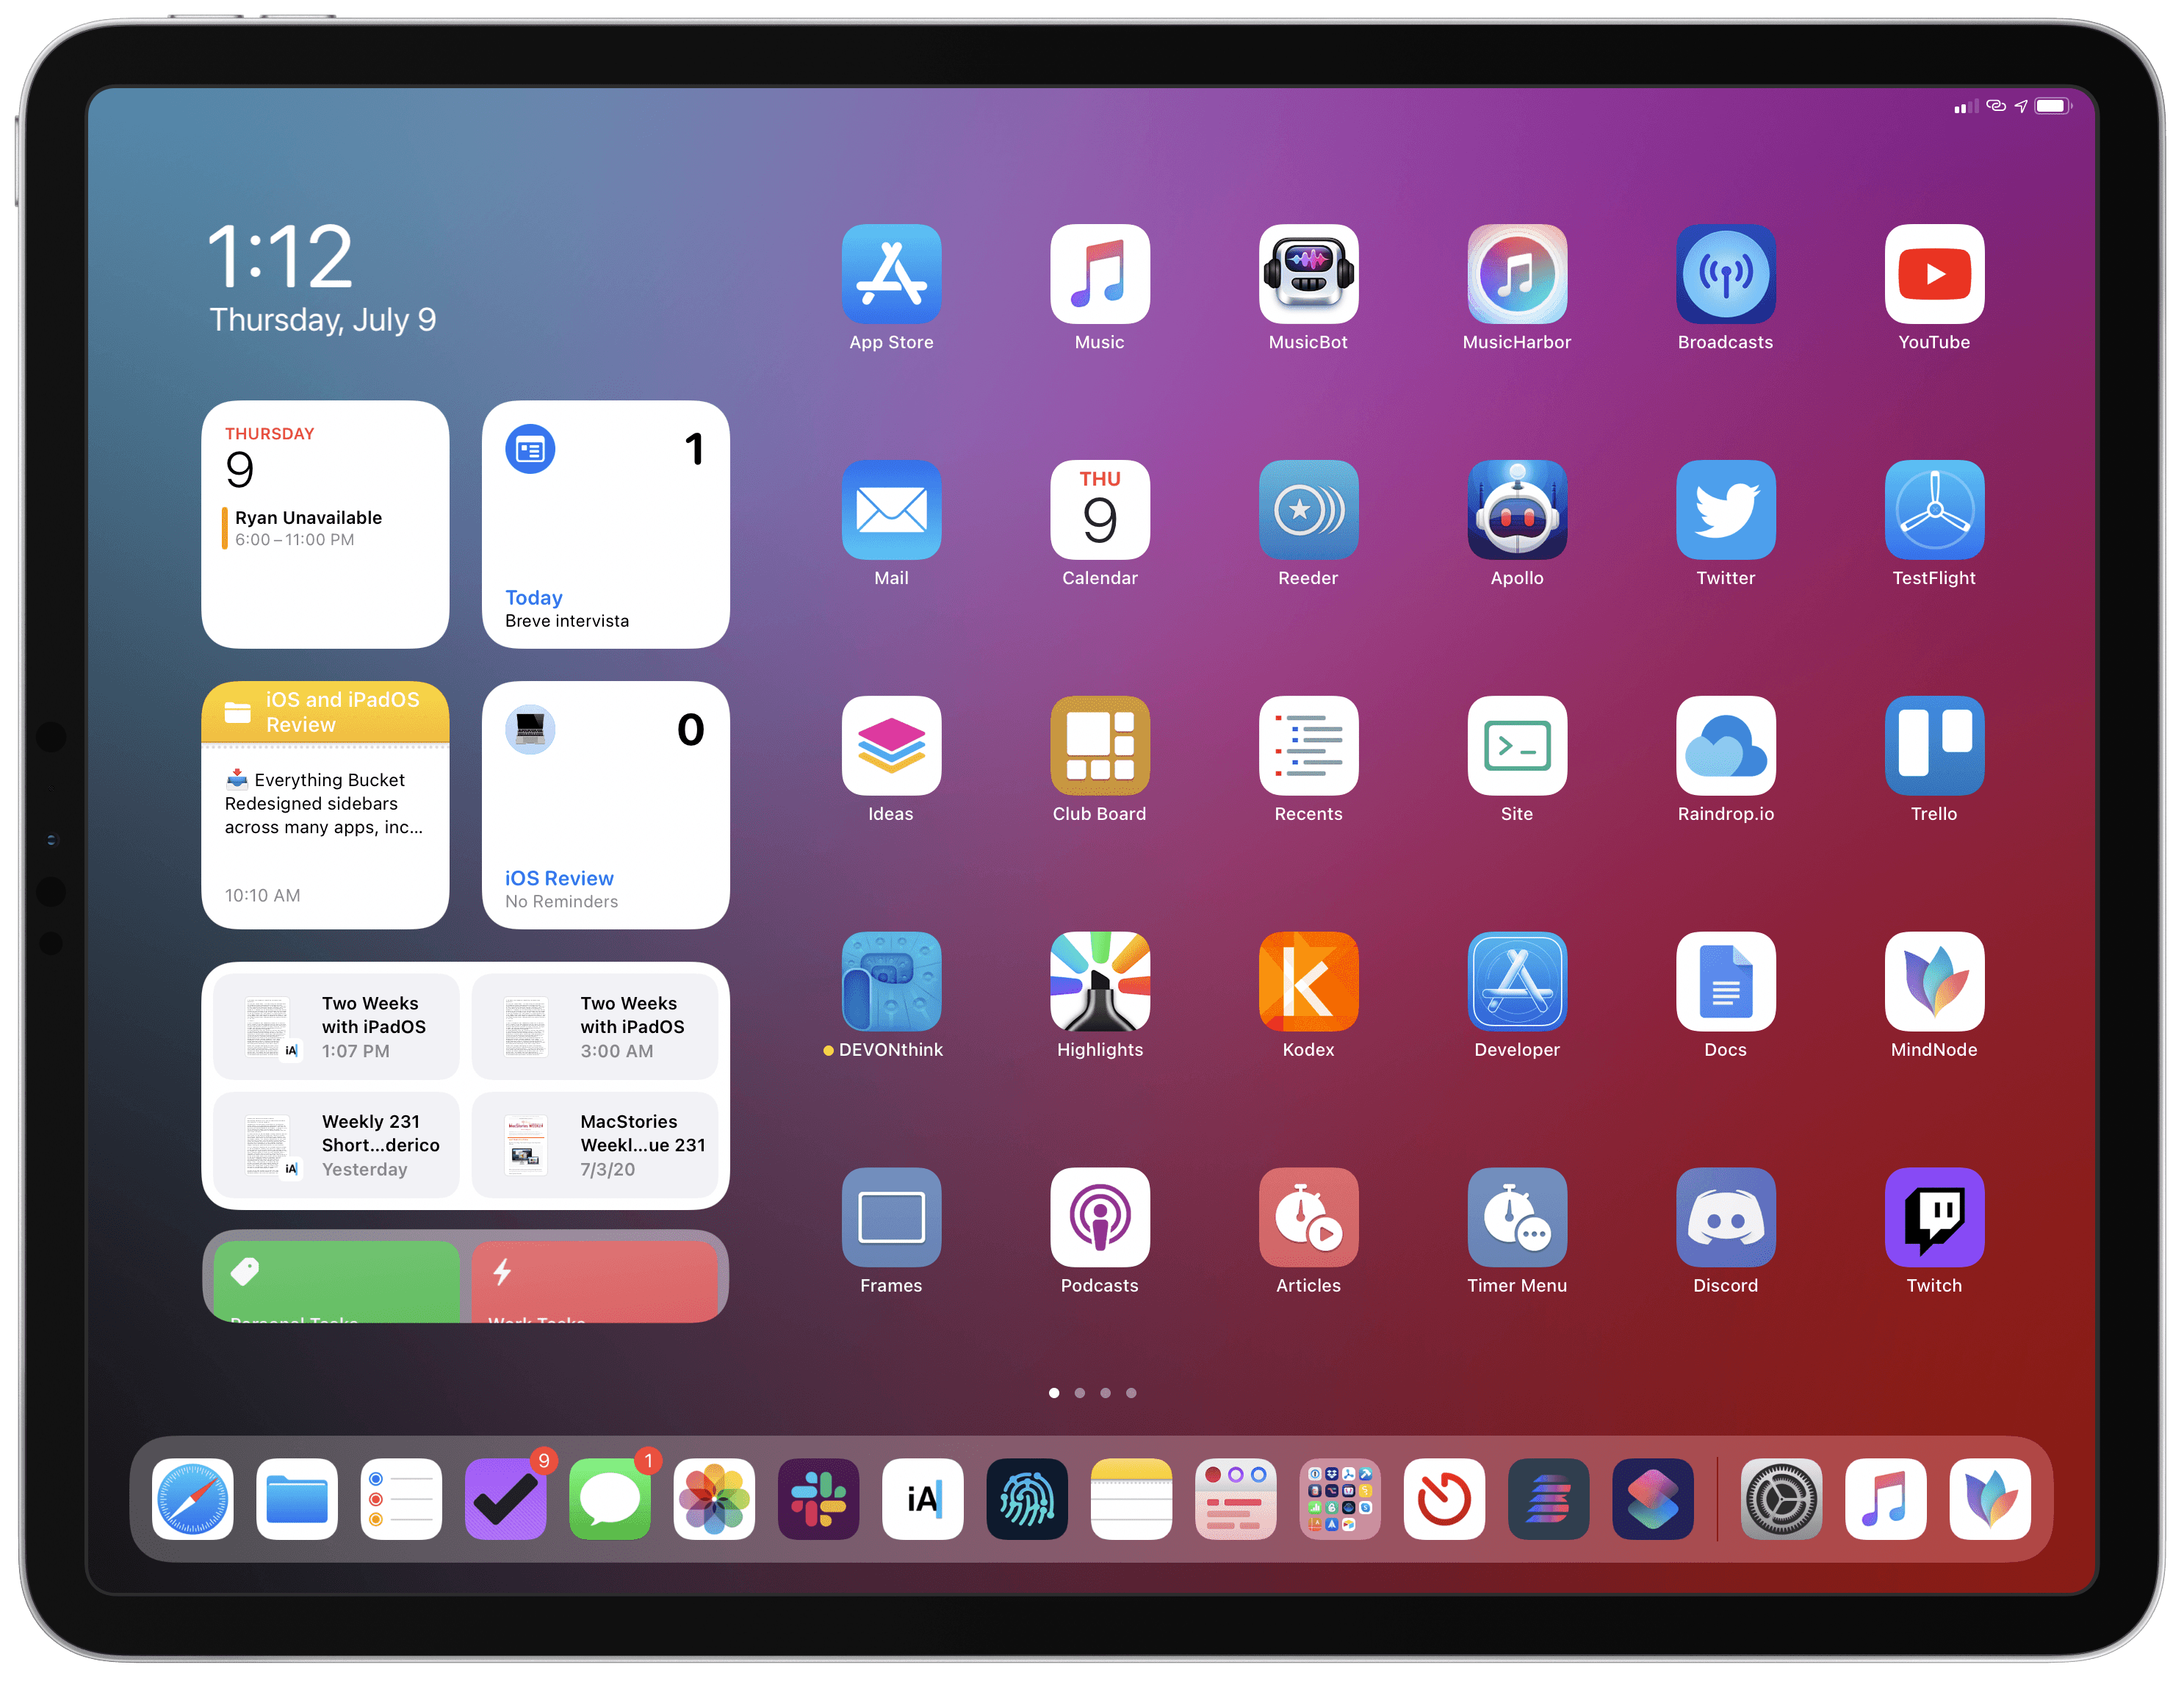 My iPadOS 14 Home Screen.